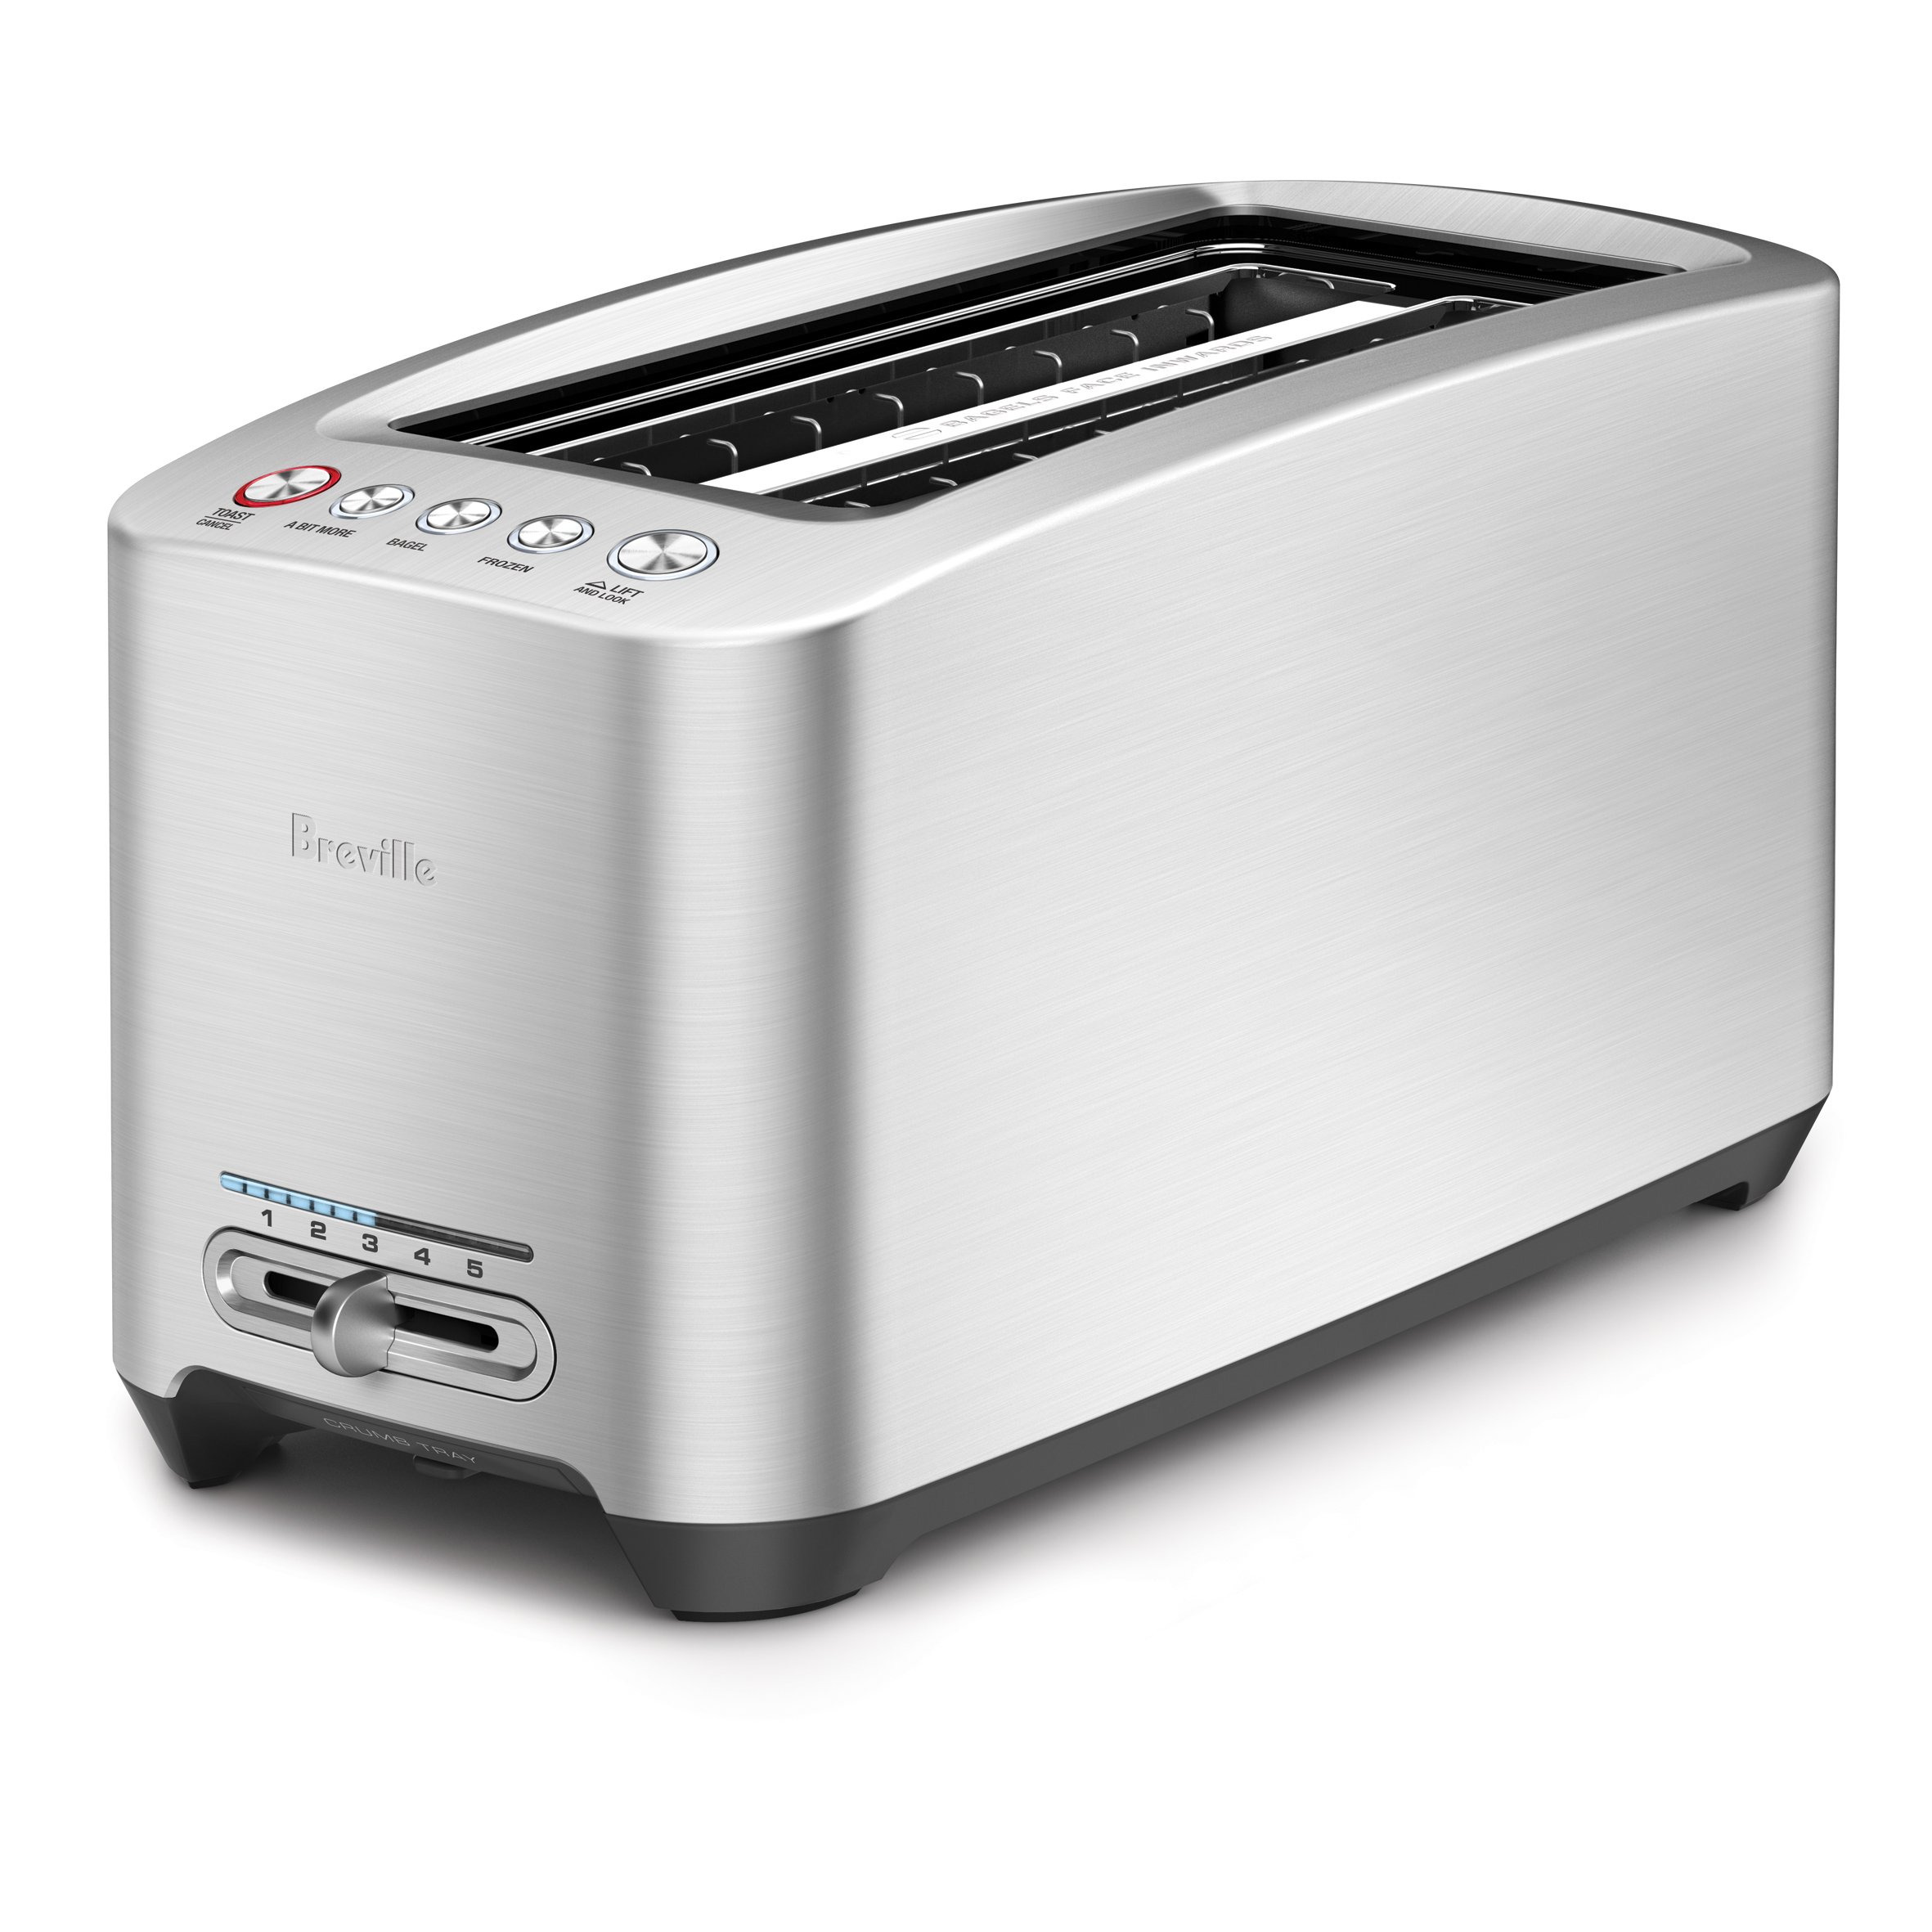 toaster jb product results hard drive category drives education search